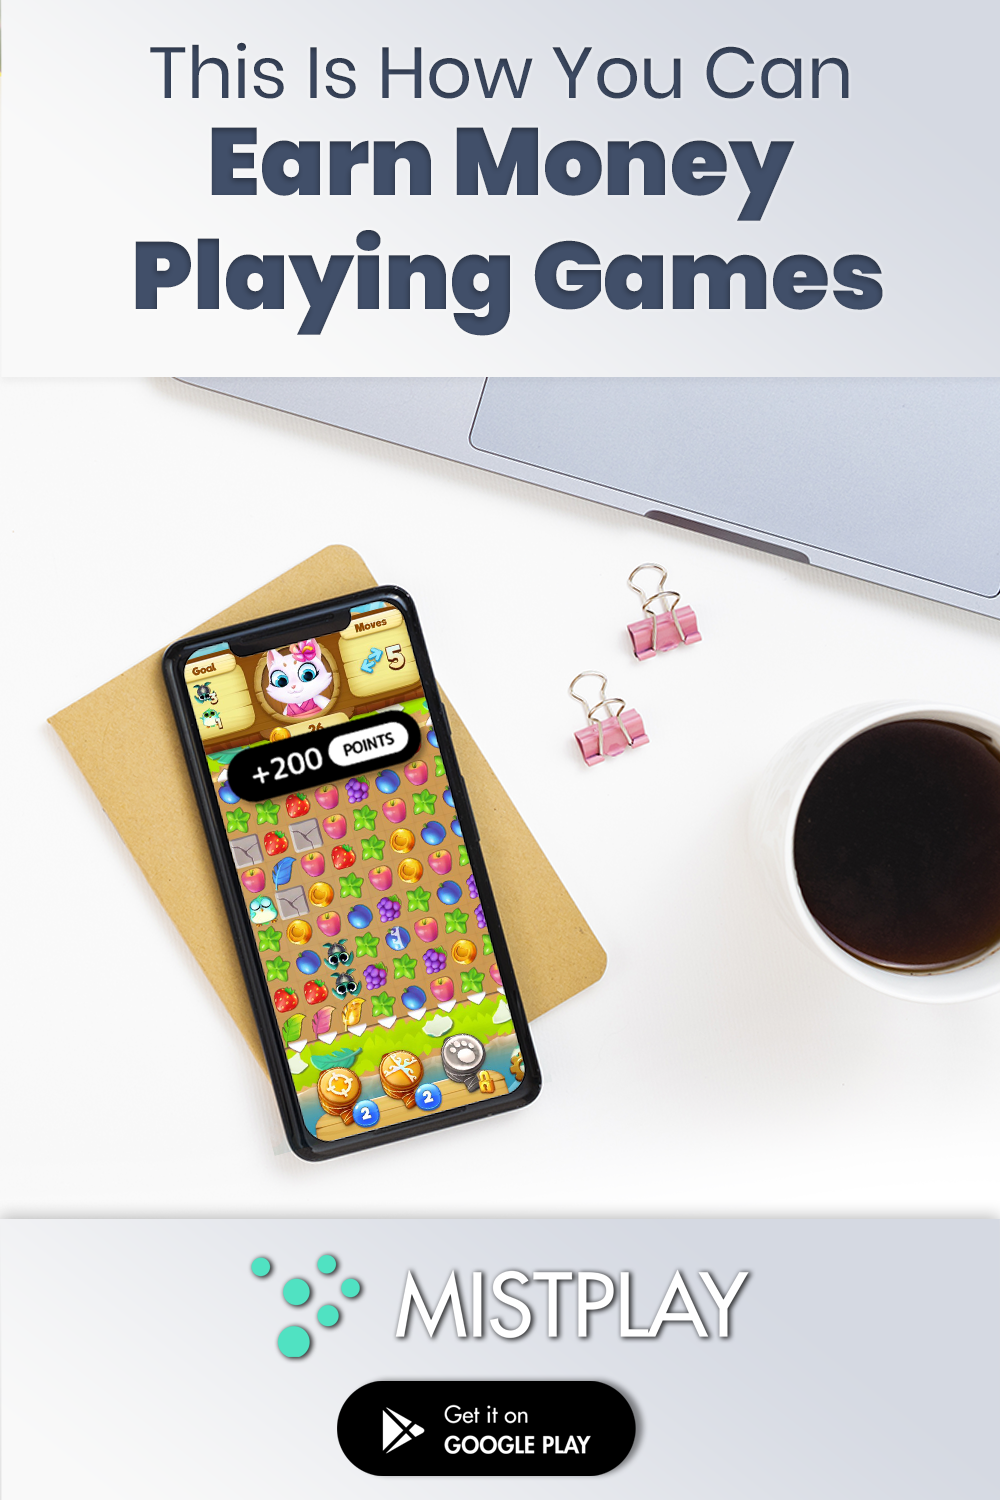 Mistplay is a discovery and reward app where you collect